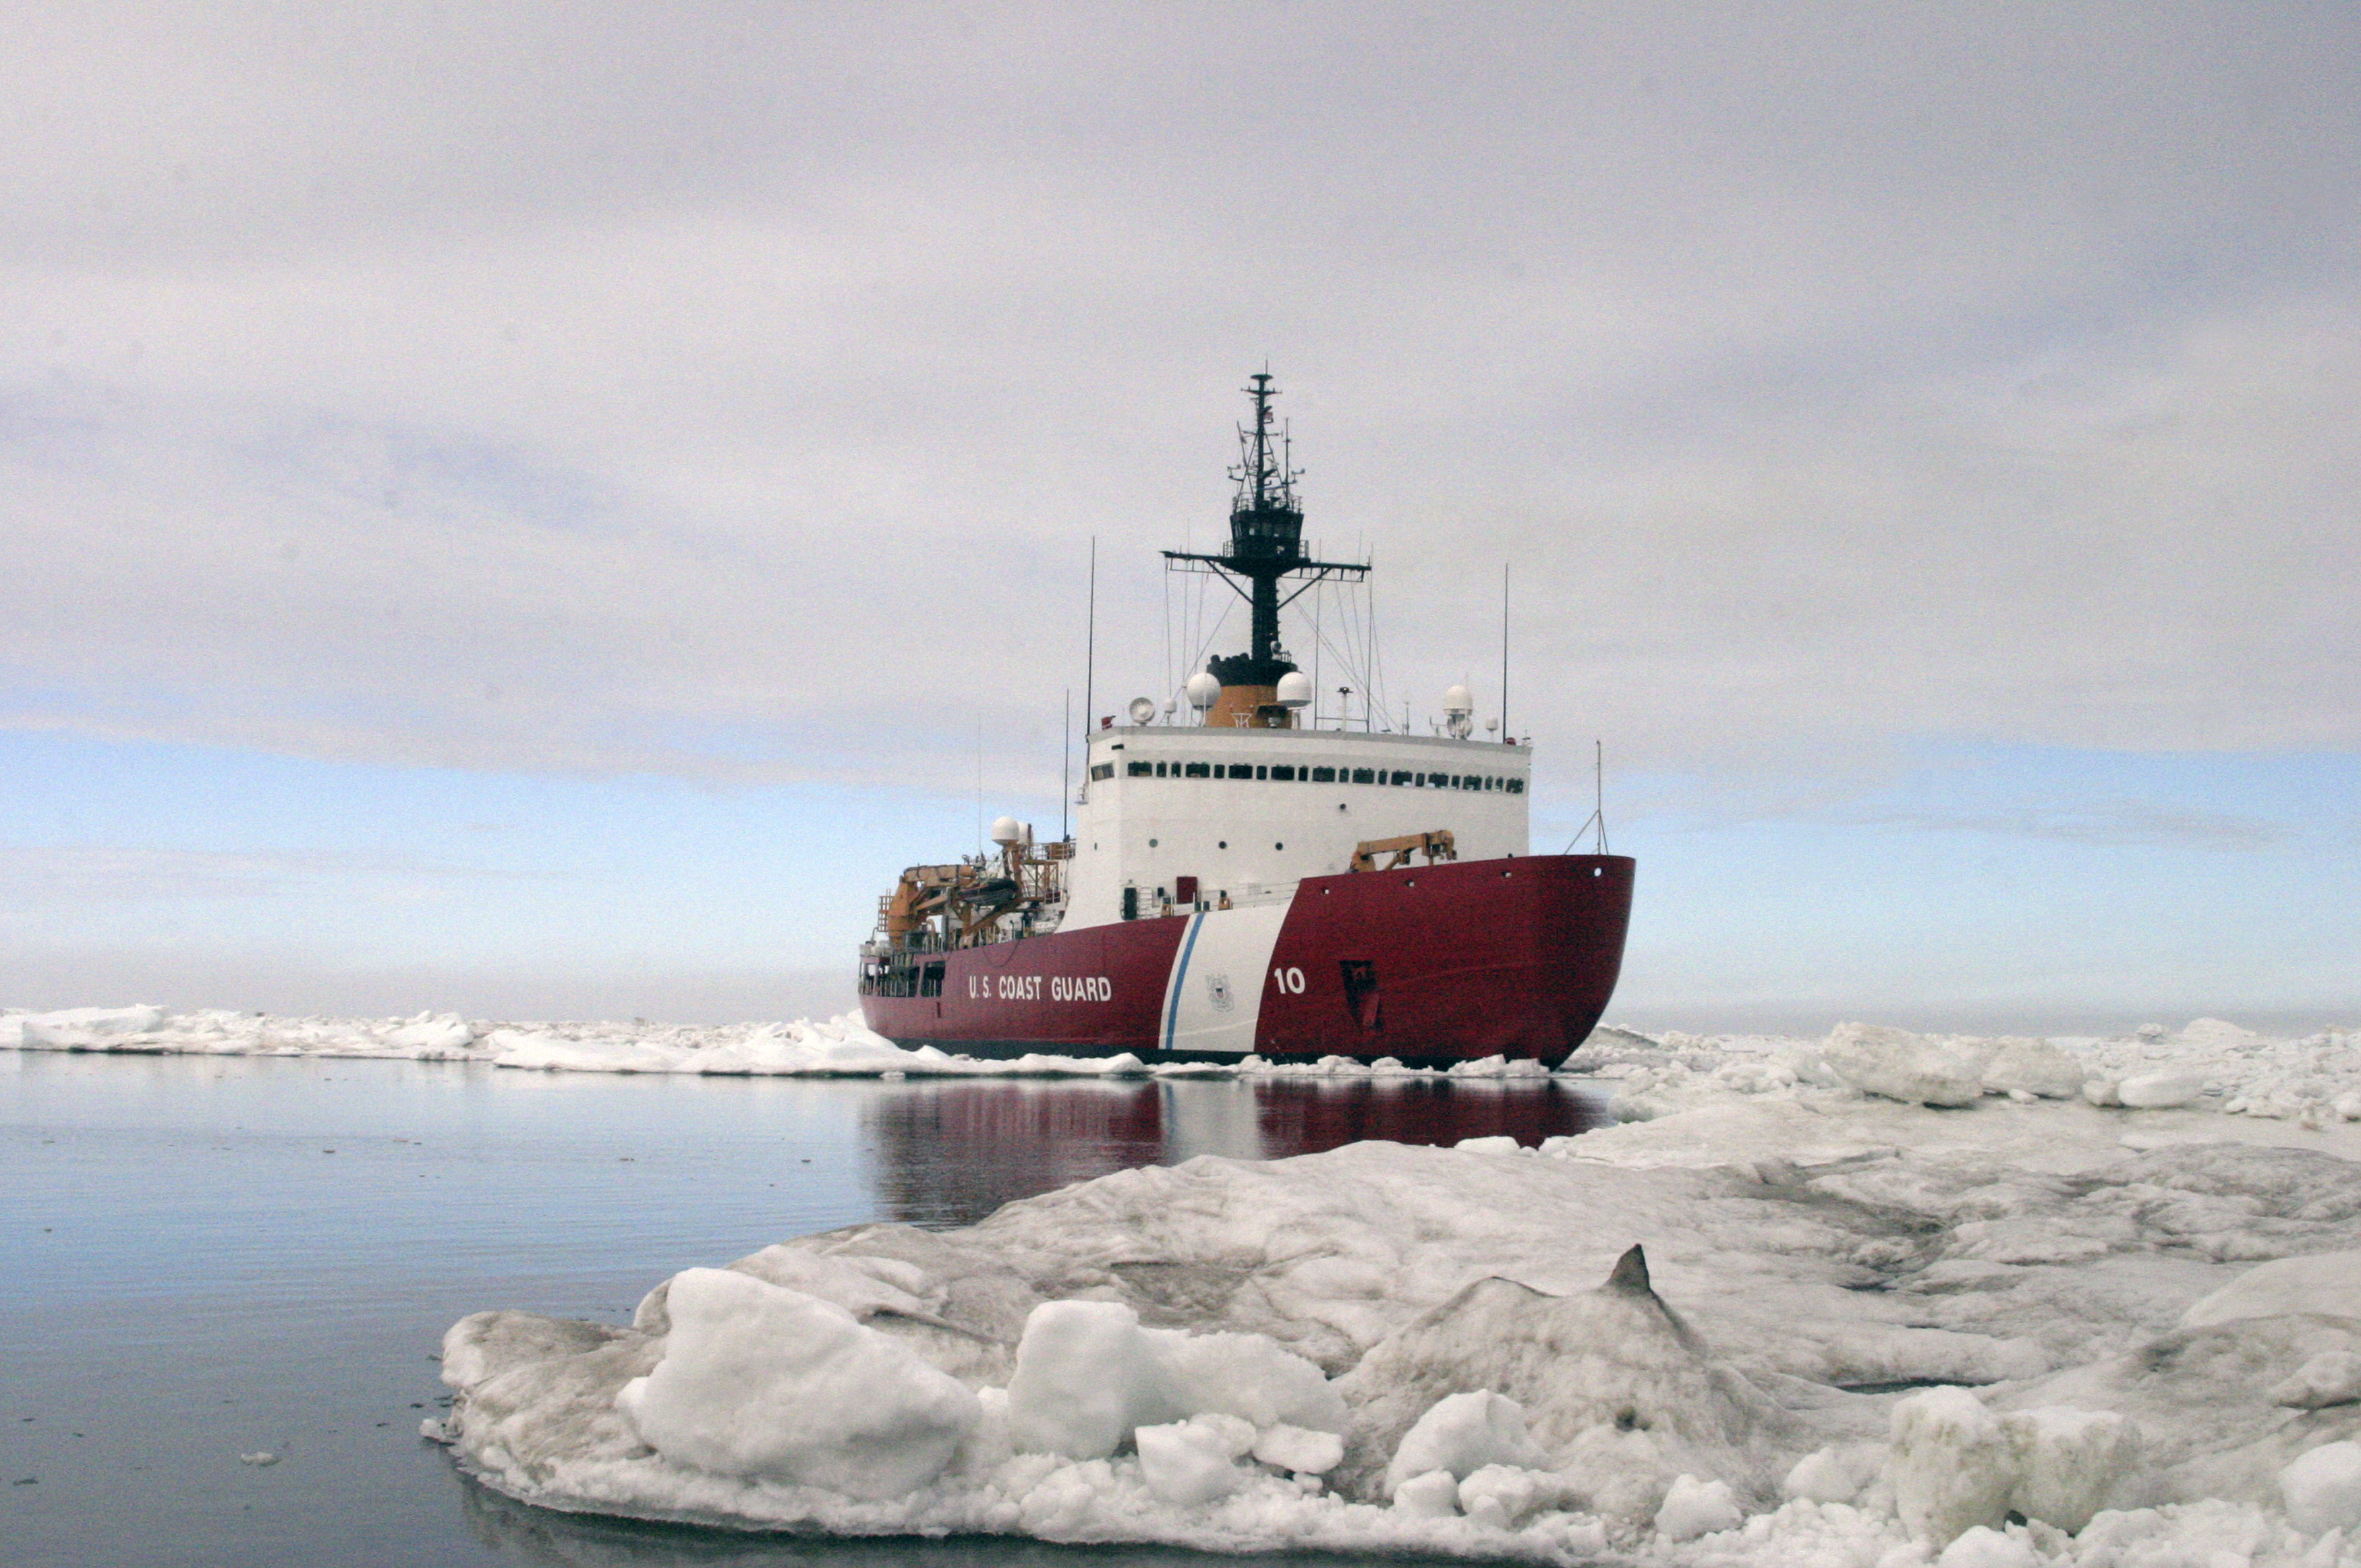 The Polar Star completes ice drills in the Arctic in July 2013. Built in the 1970s and only meant to last 30 years, the vessel is the U.S. Coast Guard's only heavy icebreaker. U.S. Coast Guard/Reuters